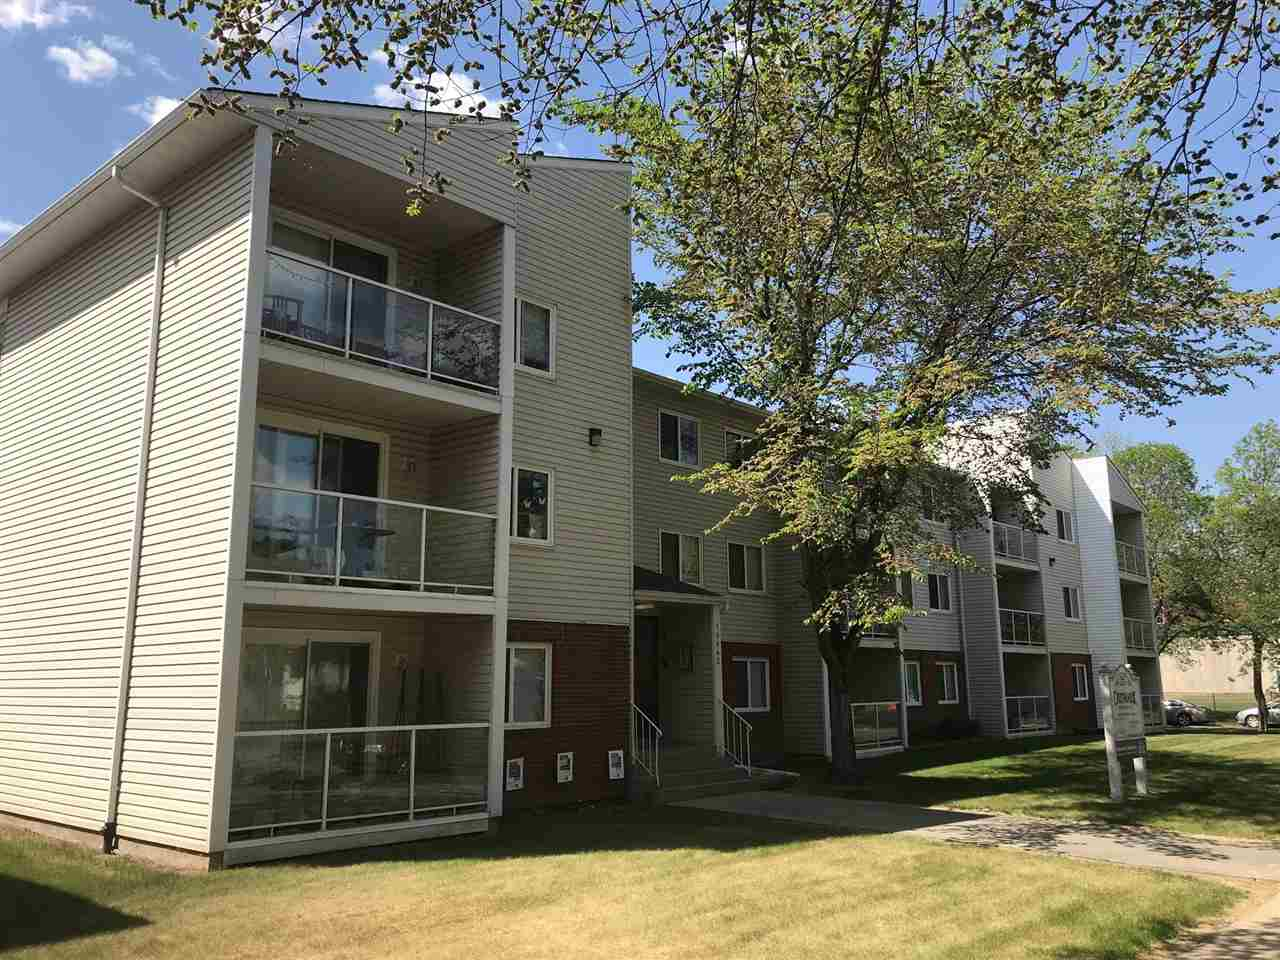 Main Photo: 202 10842 107 Street in Edmonton: Zone 08 Condo for sale : MLS®# E4129825